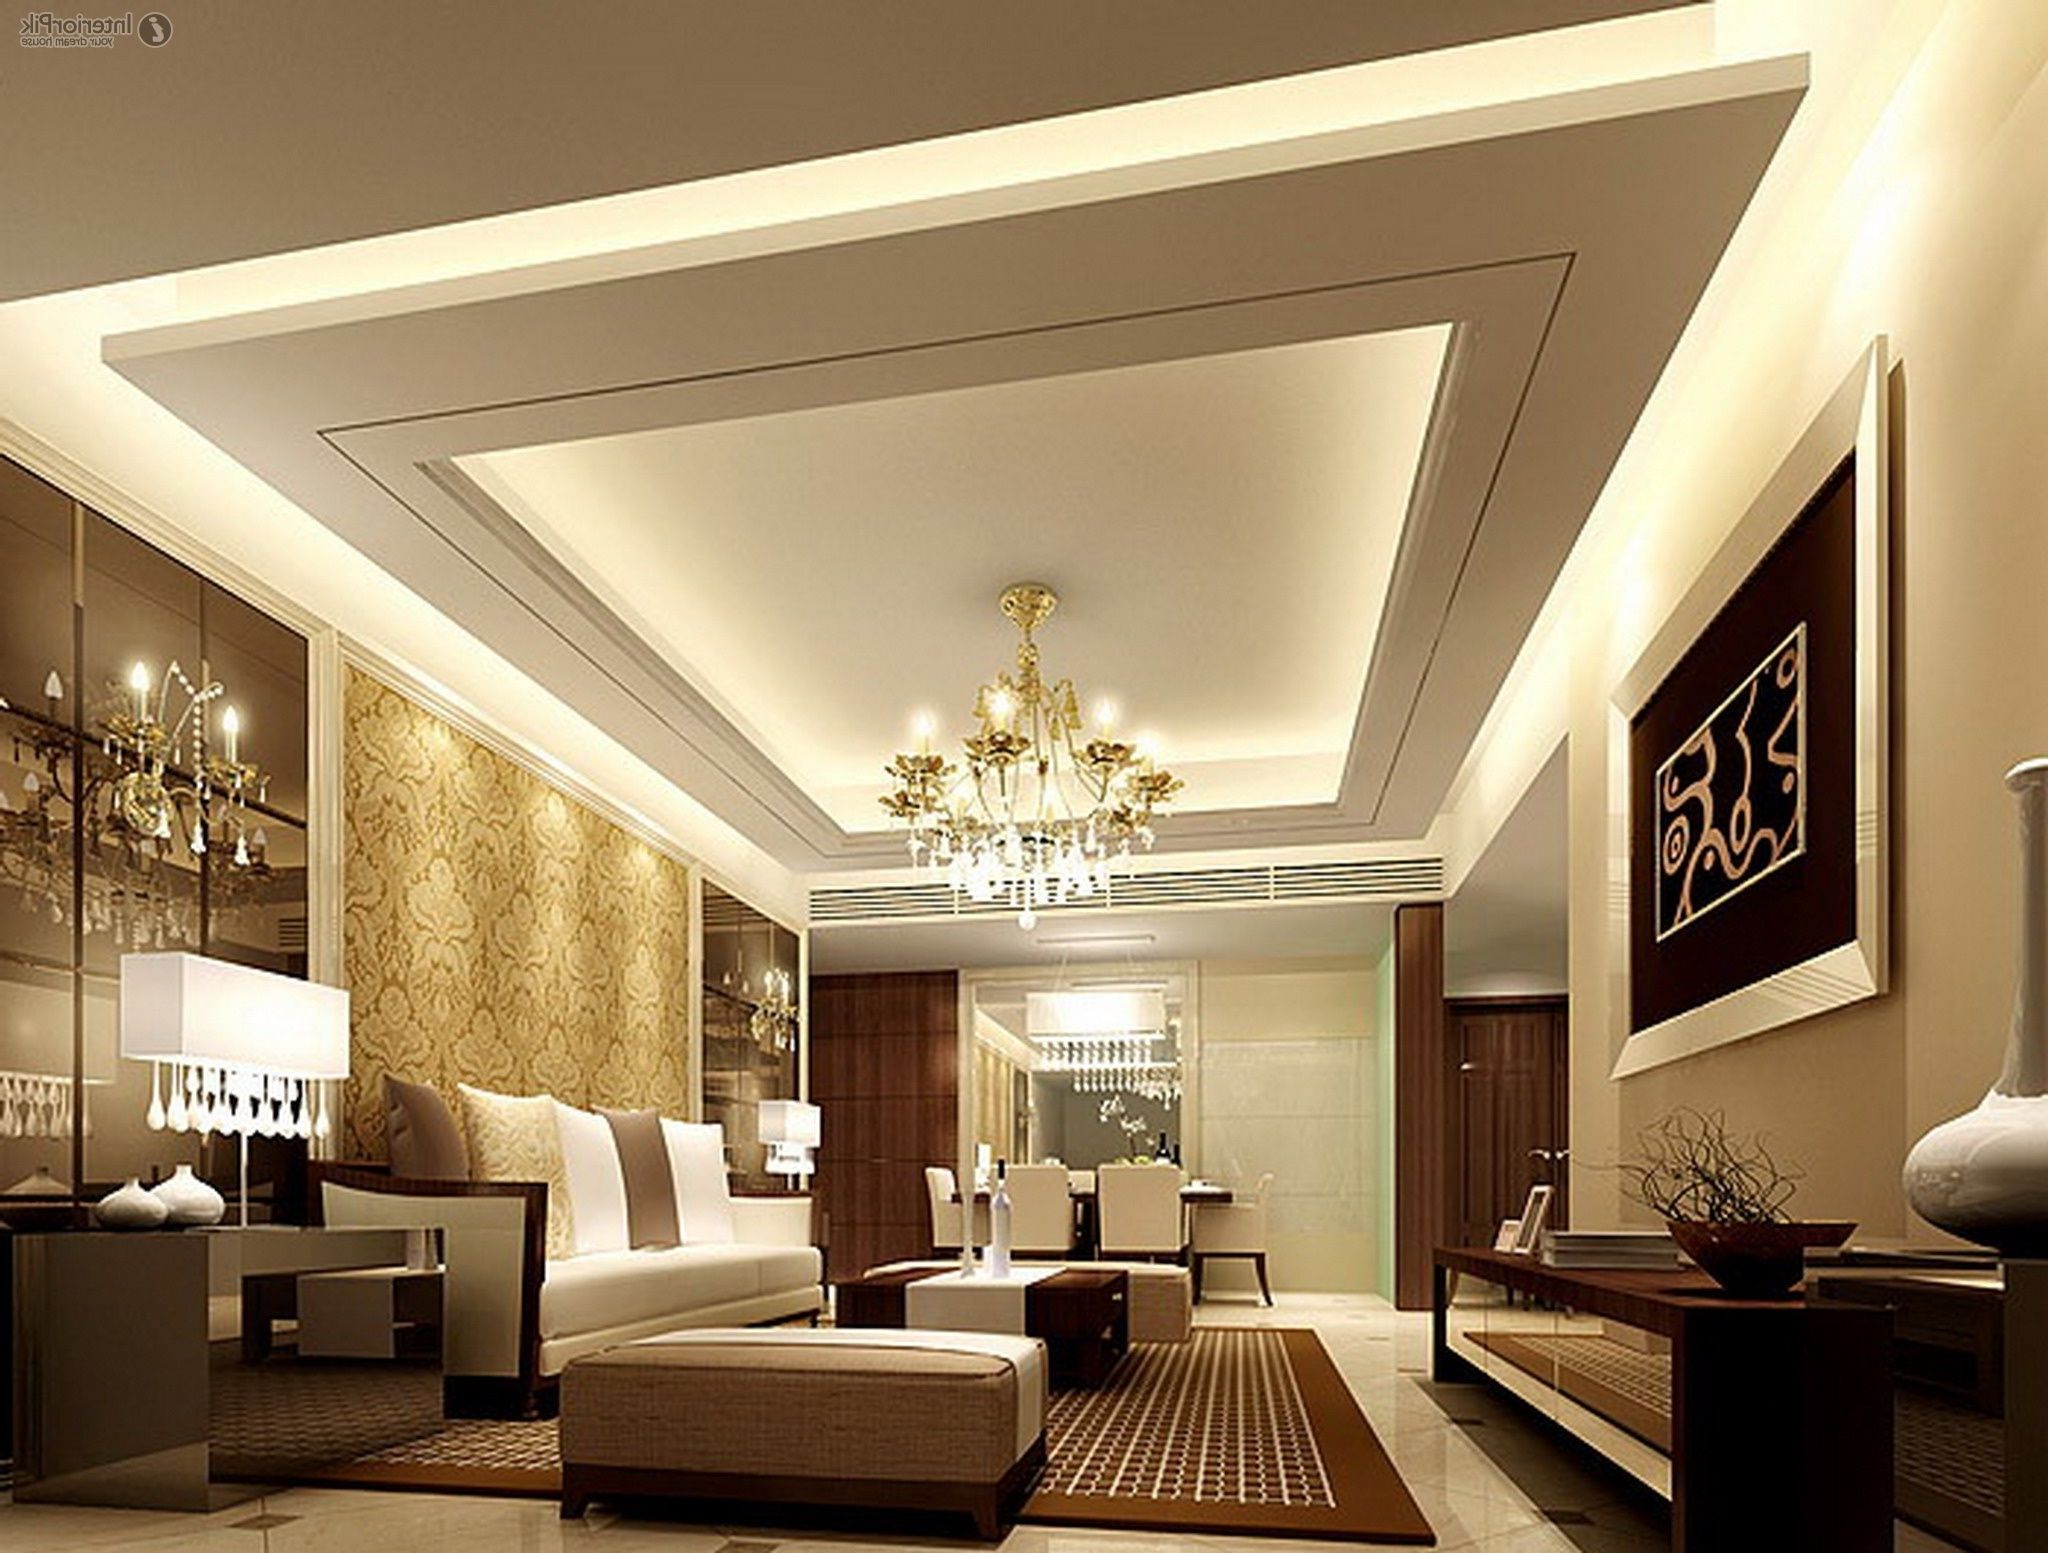 Gypsum Ceiling Design For Living Room Lighting Home Decorate Best Awesome Best Wall Designs For Living Room Review